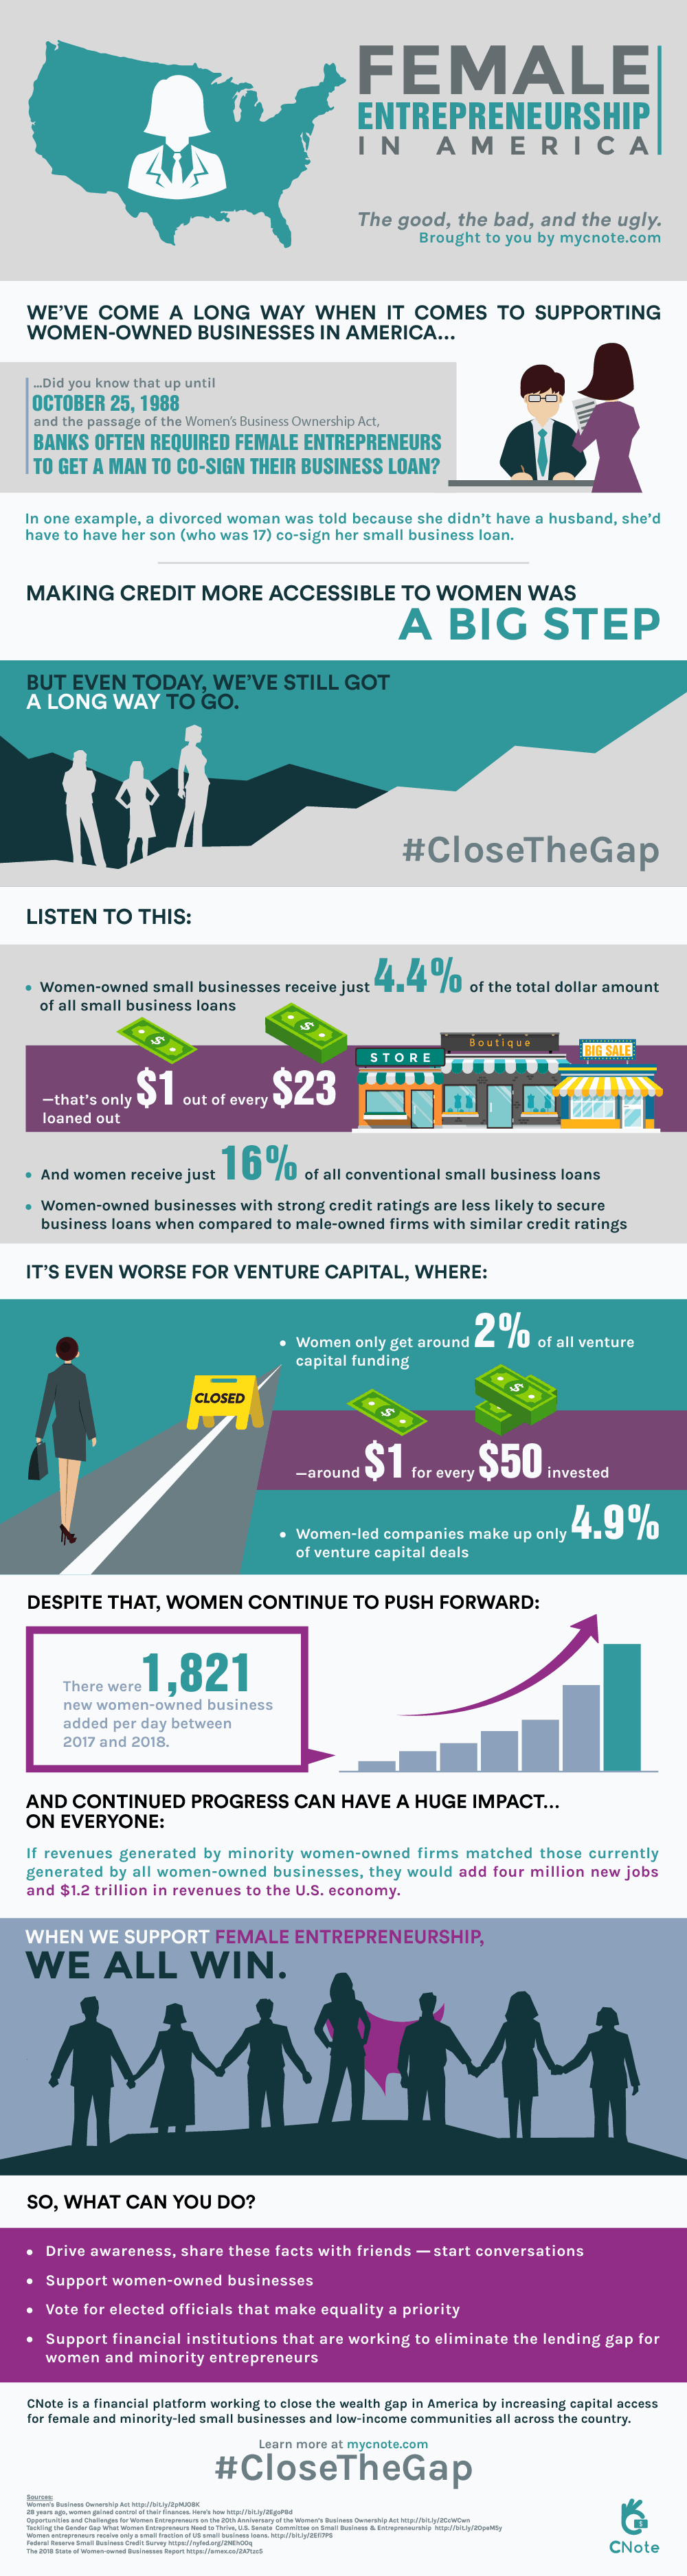 This infographic highlights relevant statistics around female entrepreneurship, challenges with access to loan capital, and the things we can do to help #CloseTheGap